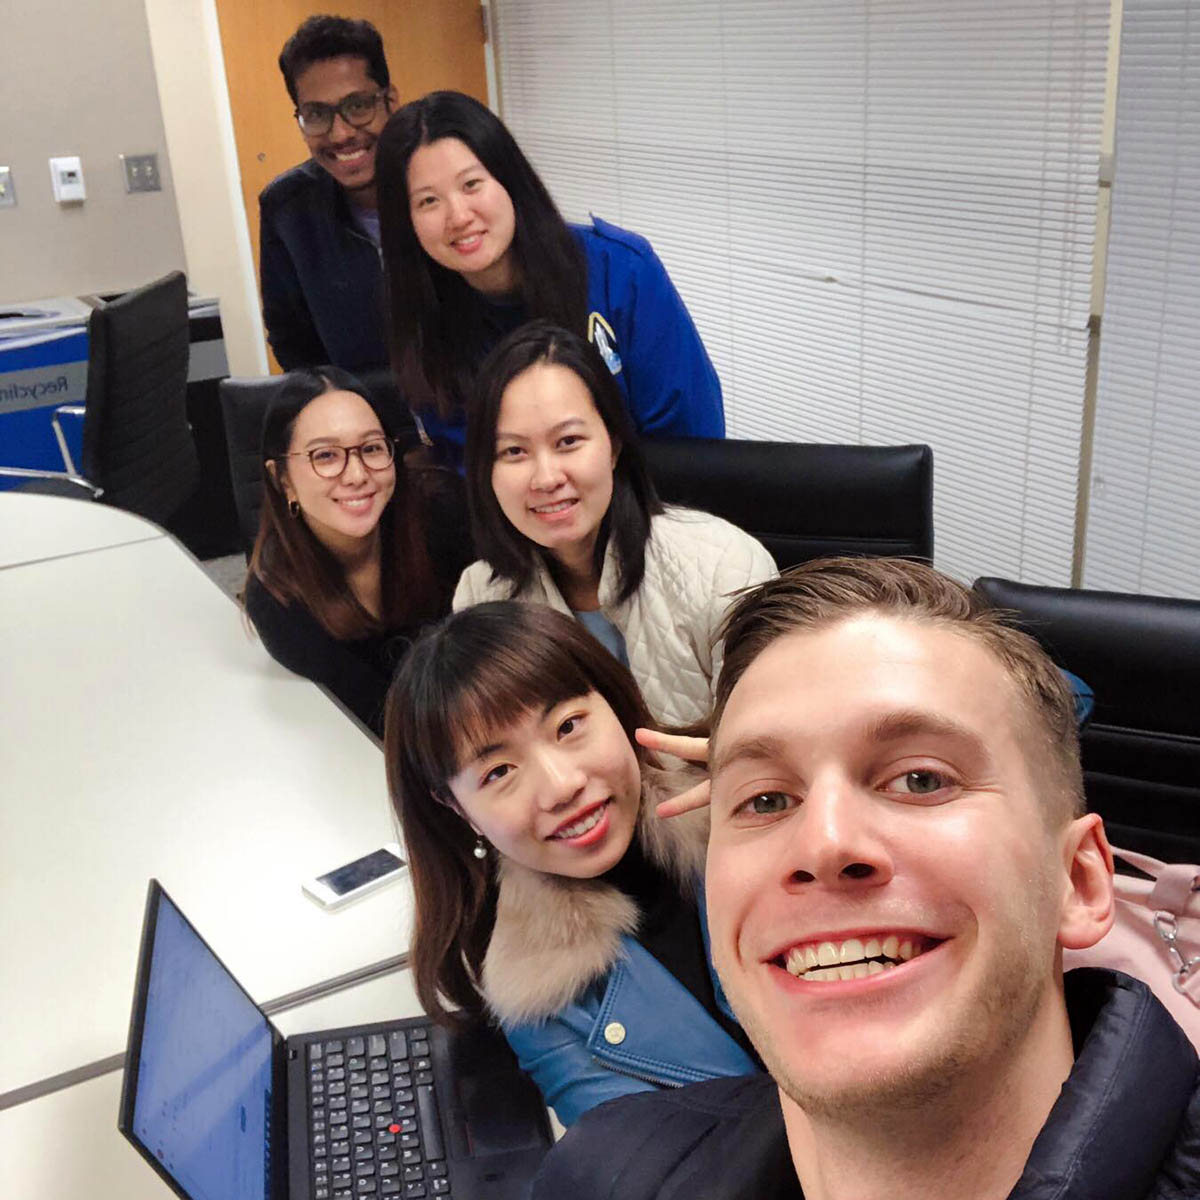 6 students on Janet's Duke Interdisciplinary Social Innovators team pose for a photo in a team study room